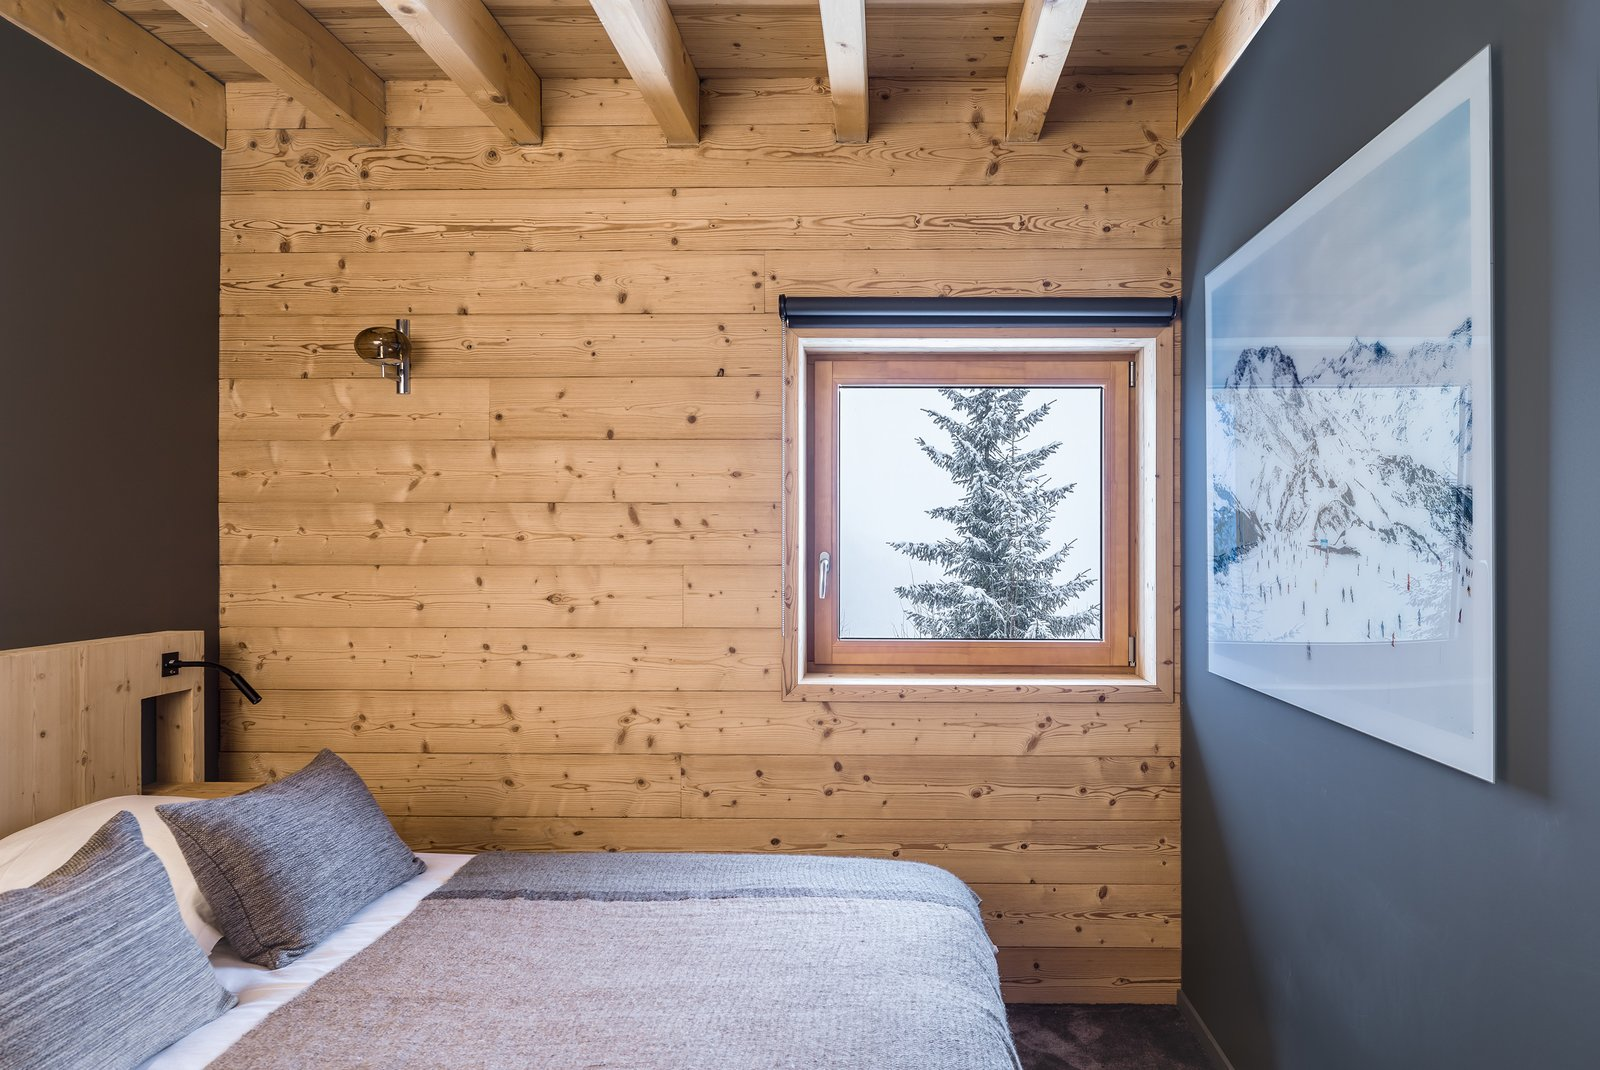 Tagged: Bedroom, Bed, Wall Lighting, and Carpet Floor.  Mountain House by studio razavi architecture